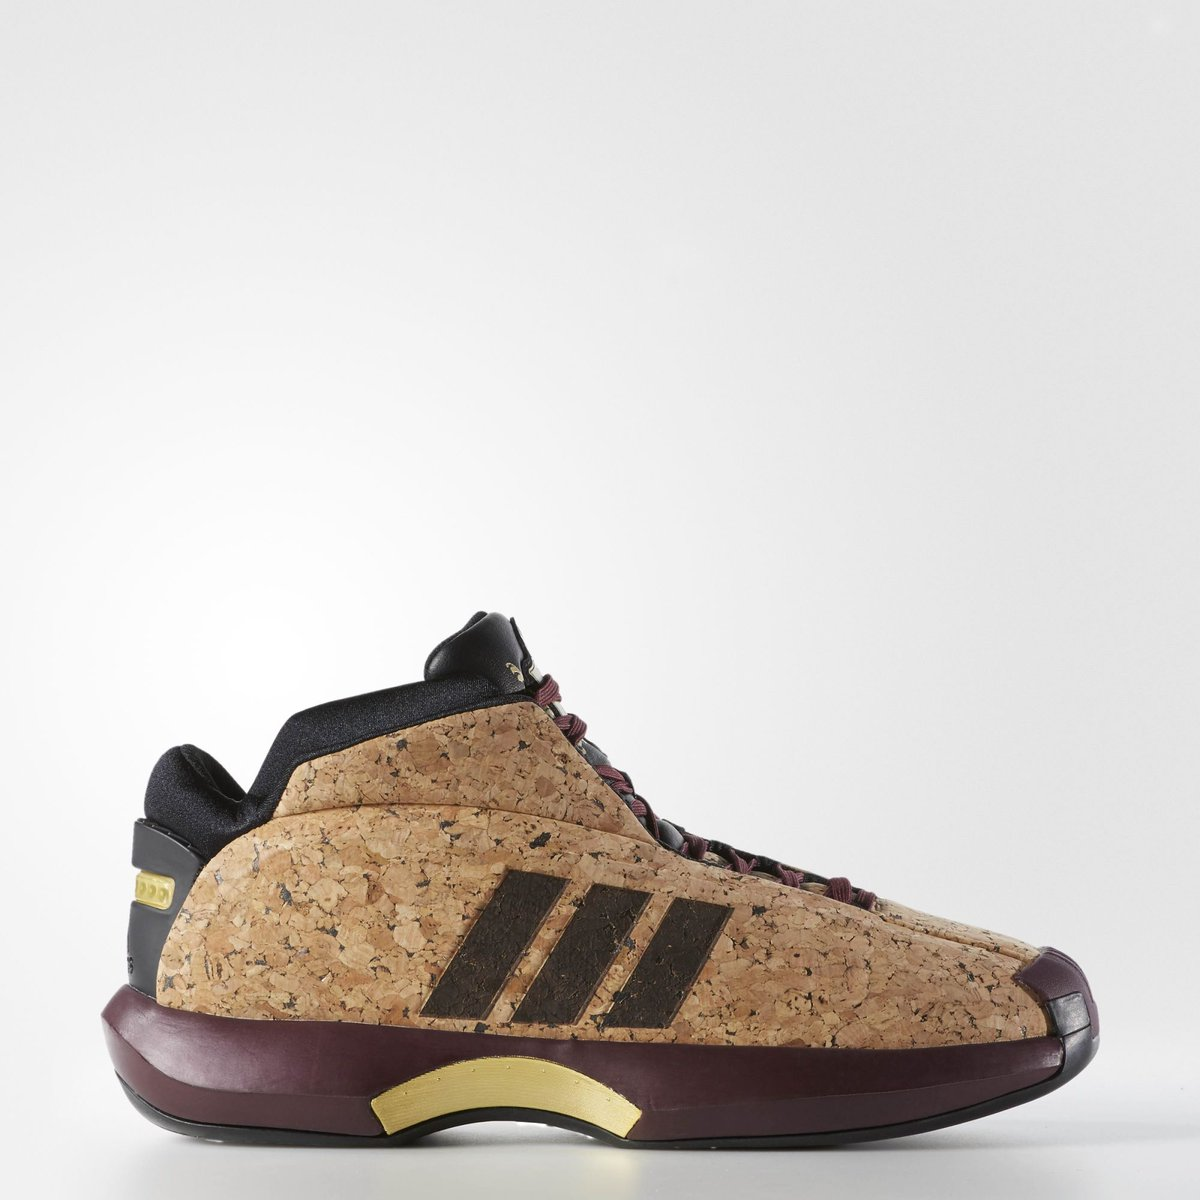 the latest 03c26 3d513 Now available on Adidas US. Adidas Kobe Vino Pack. SHOP  httpbit.ly1T4OZvN pic.twitter.comeOXzyghFJU